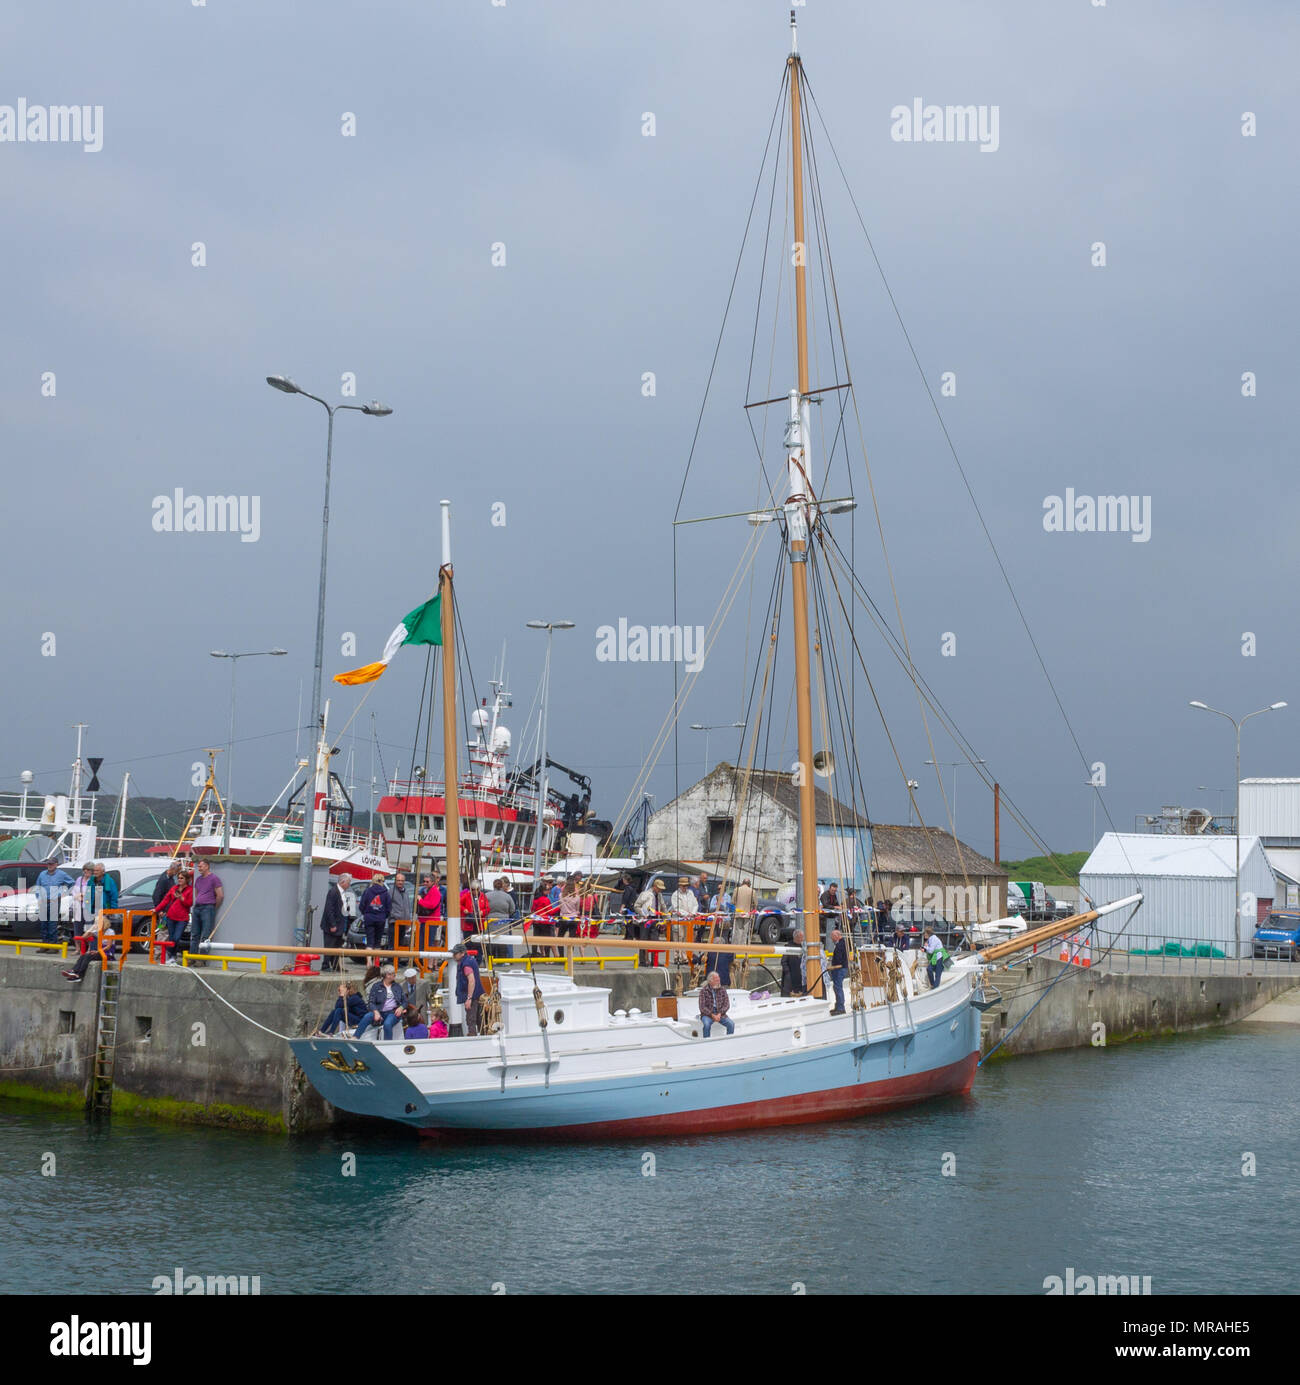 Baltimore Ireland 26th May 2018 Wooden Boats Of All Shapes And